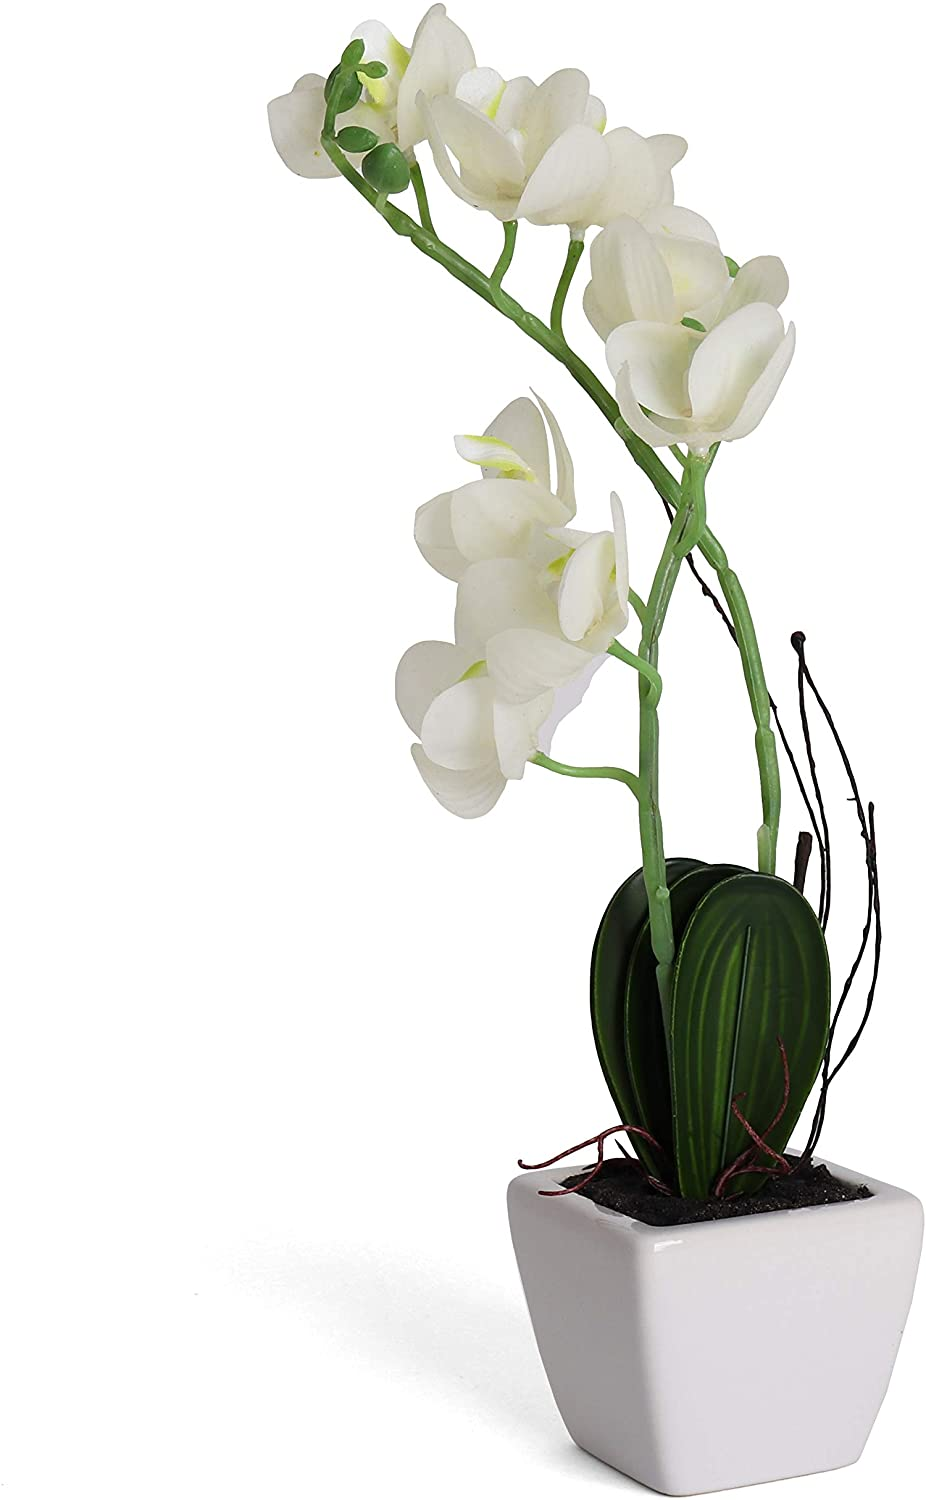 Bornbridge Artificial Orchid - Fake Orchid Plant with Real Touch Flowers - Faux Orchid with Long Stem Artificial Flowers - Potted Orchid/Plastic Orchid Fake Flowers - (Medium, White Orchid)